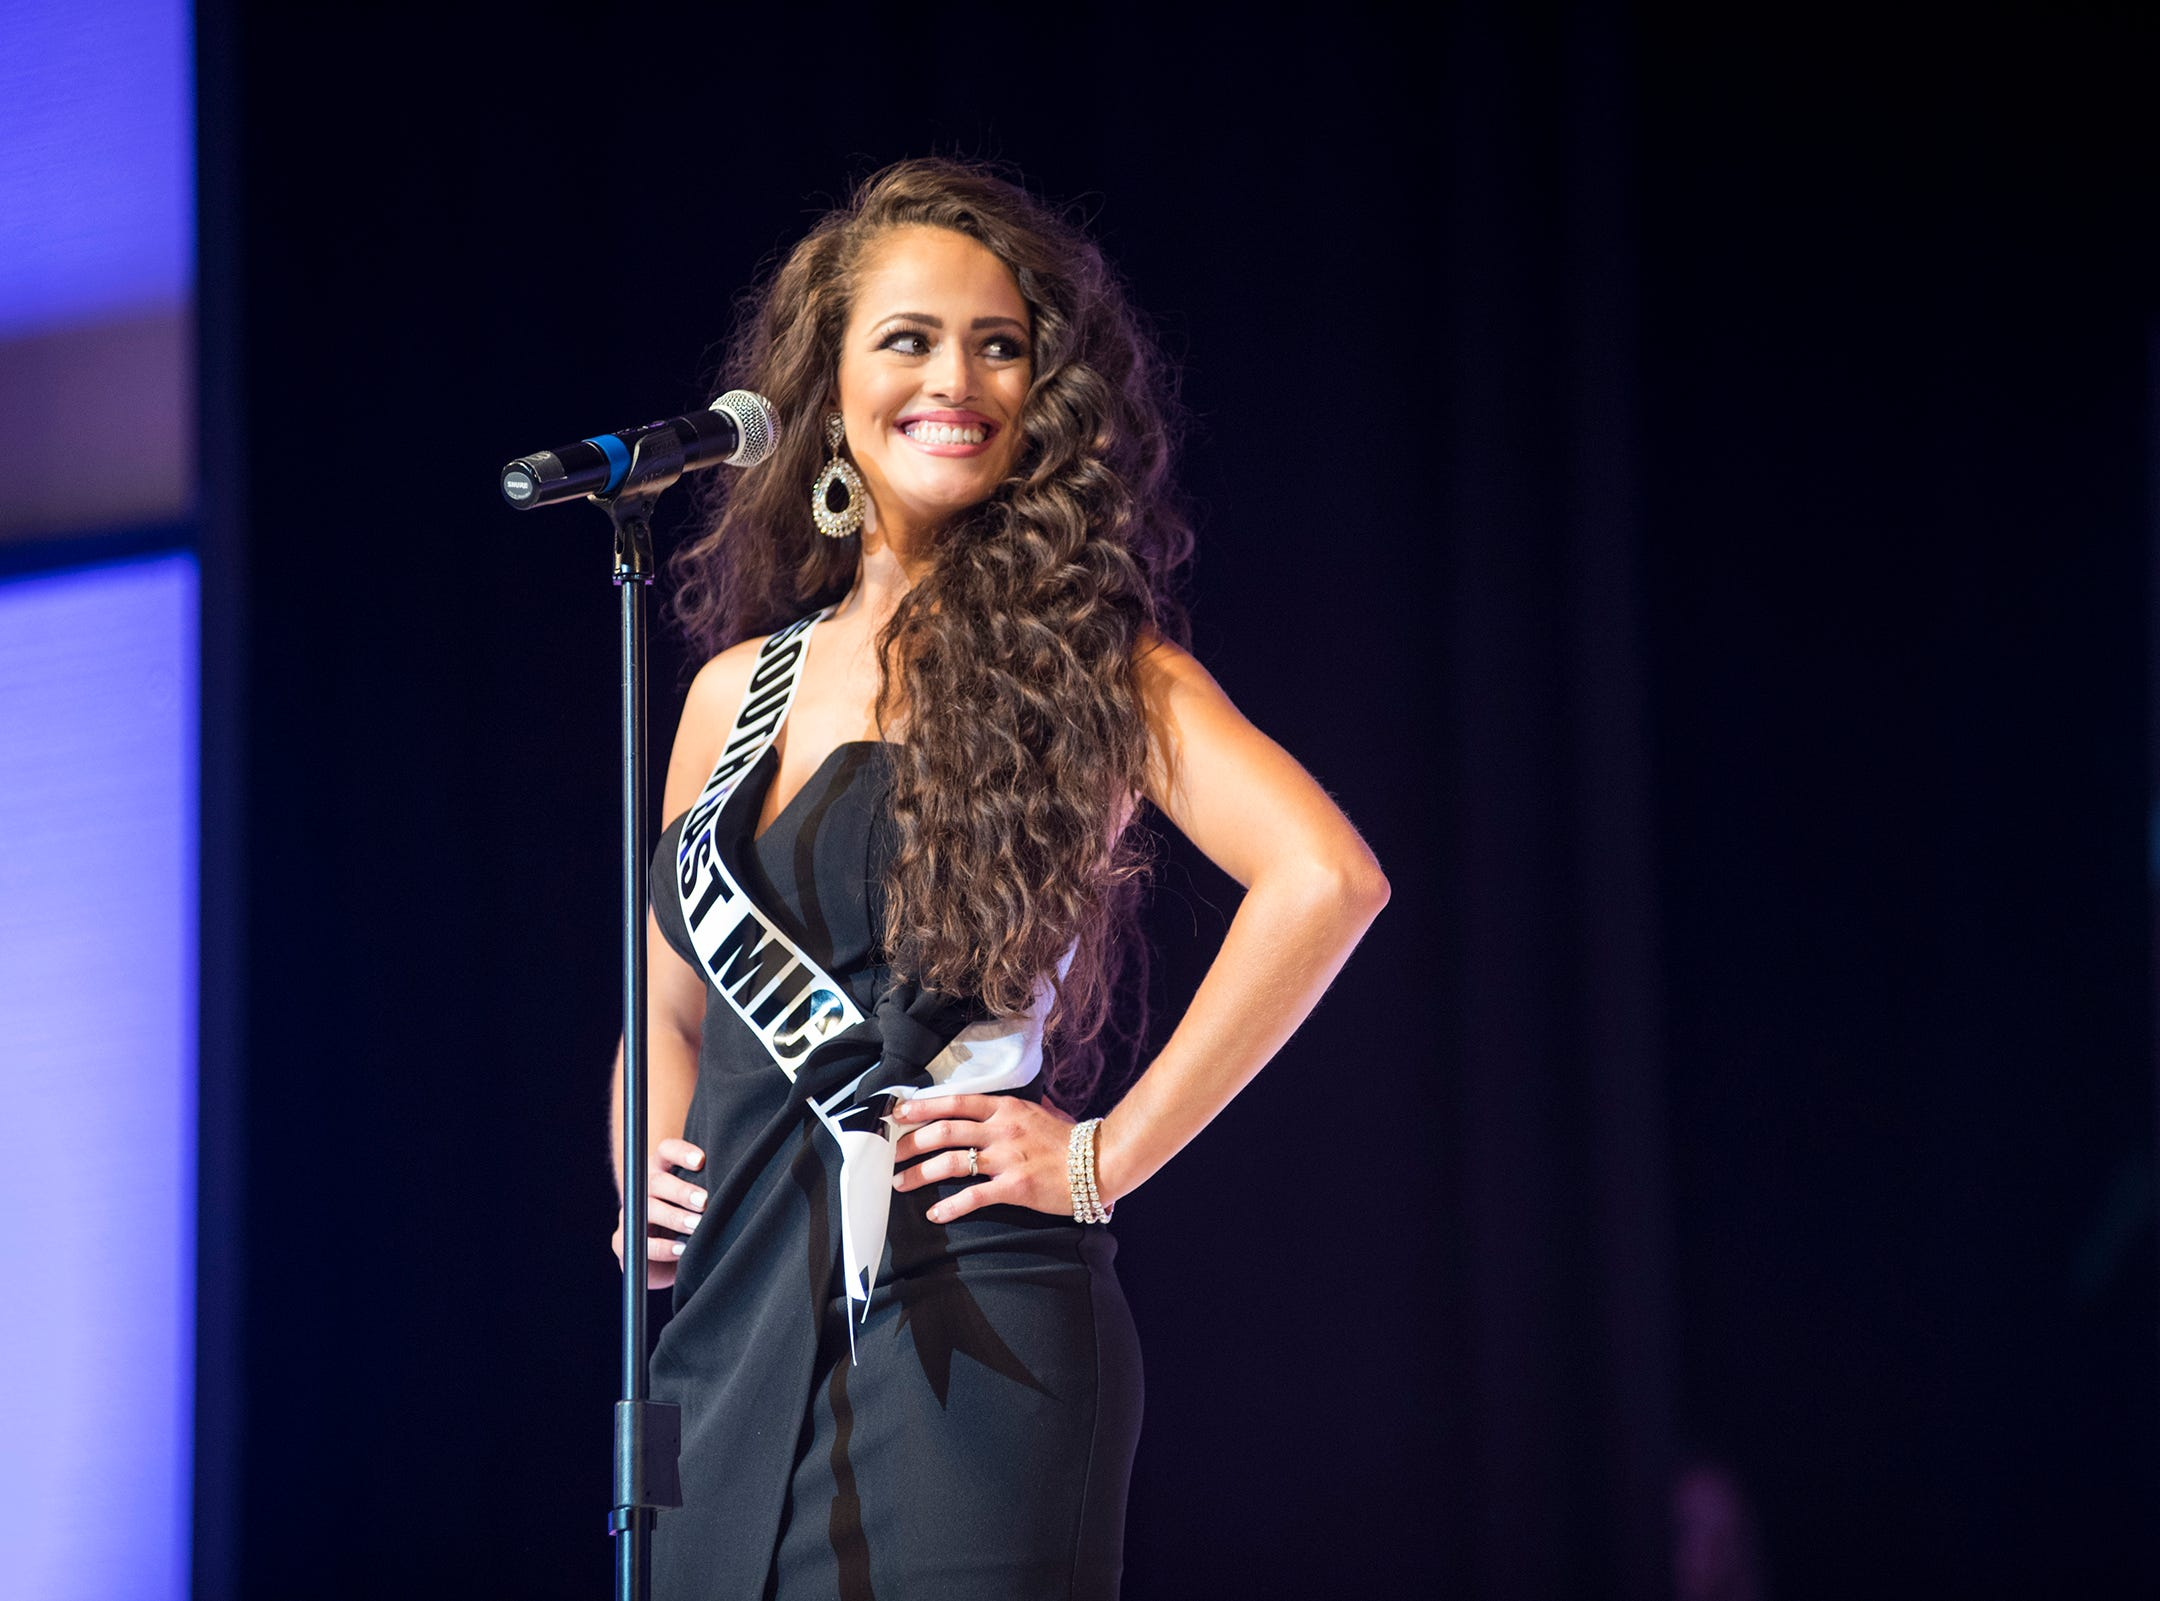 Miss Southeast Michigan Taylor Sherman introduces herself Saturday, Sept. 22, 2018 at the start of the Miss Michigan USA competition at McMorran Theater.